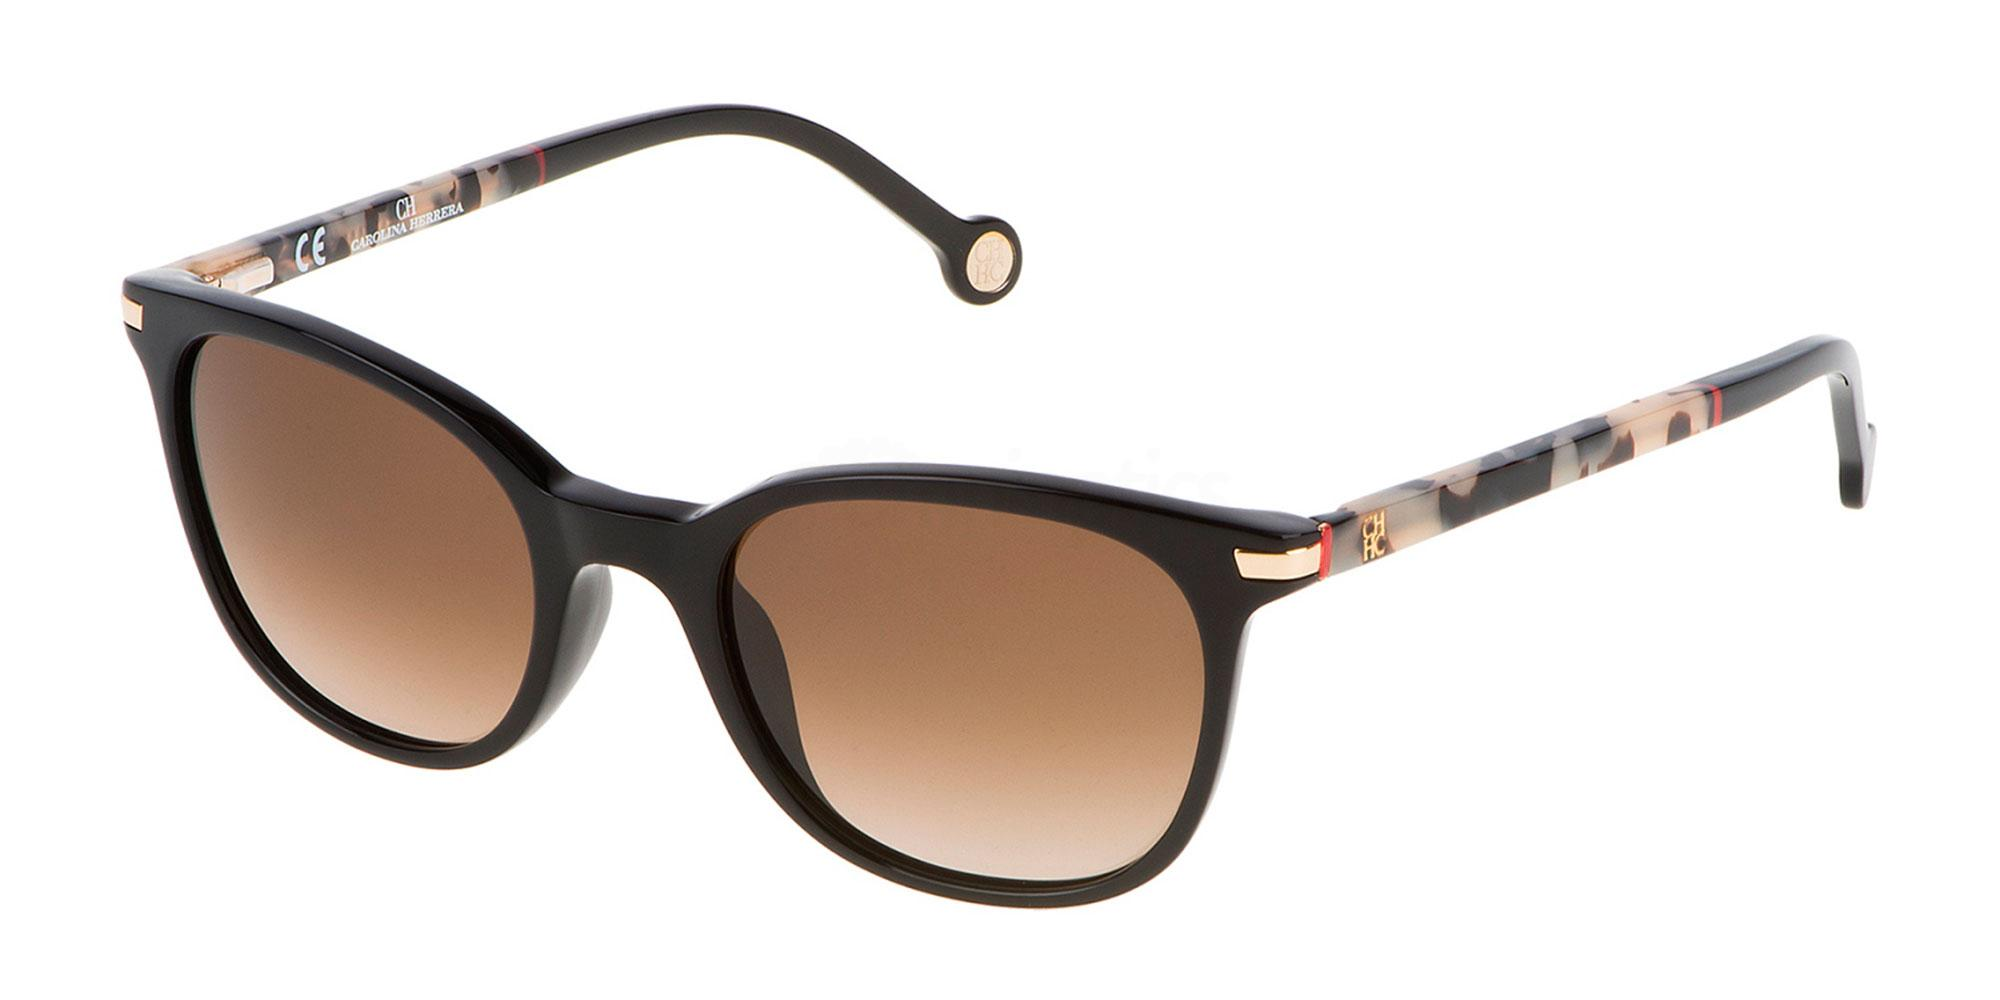 0700 SHE650V Sunglasses, CH Carolina Herrera